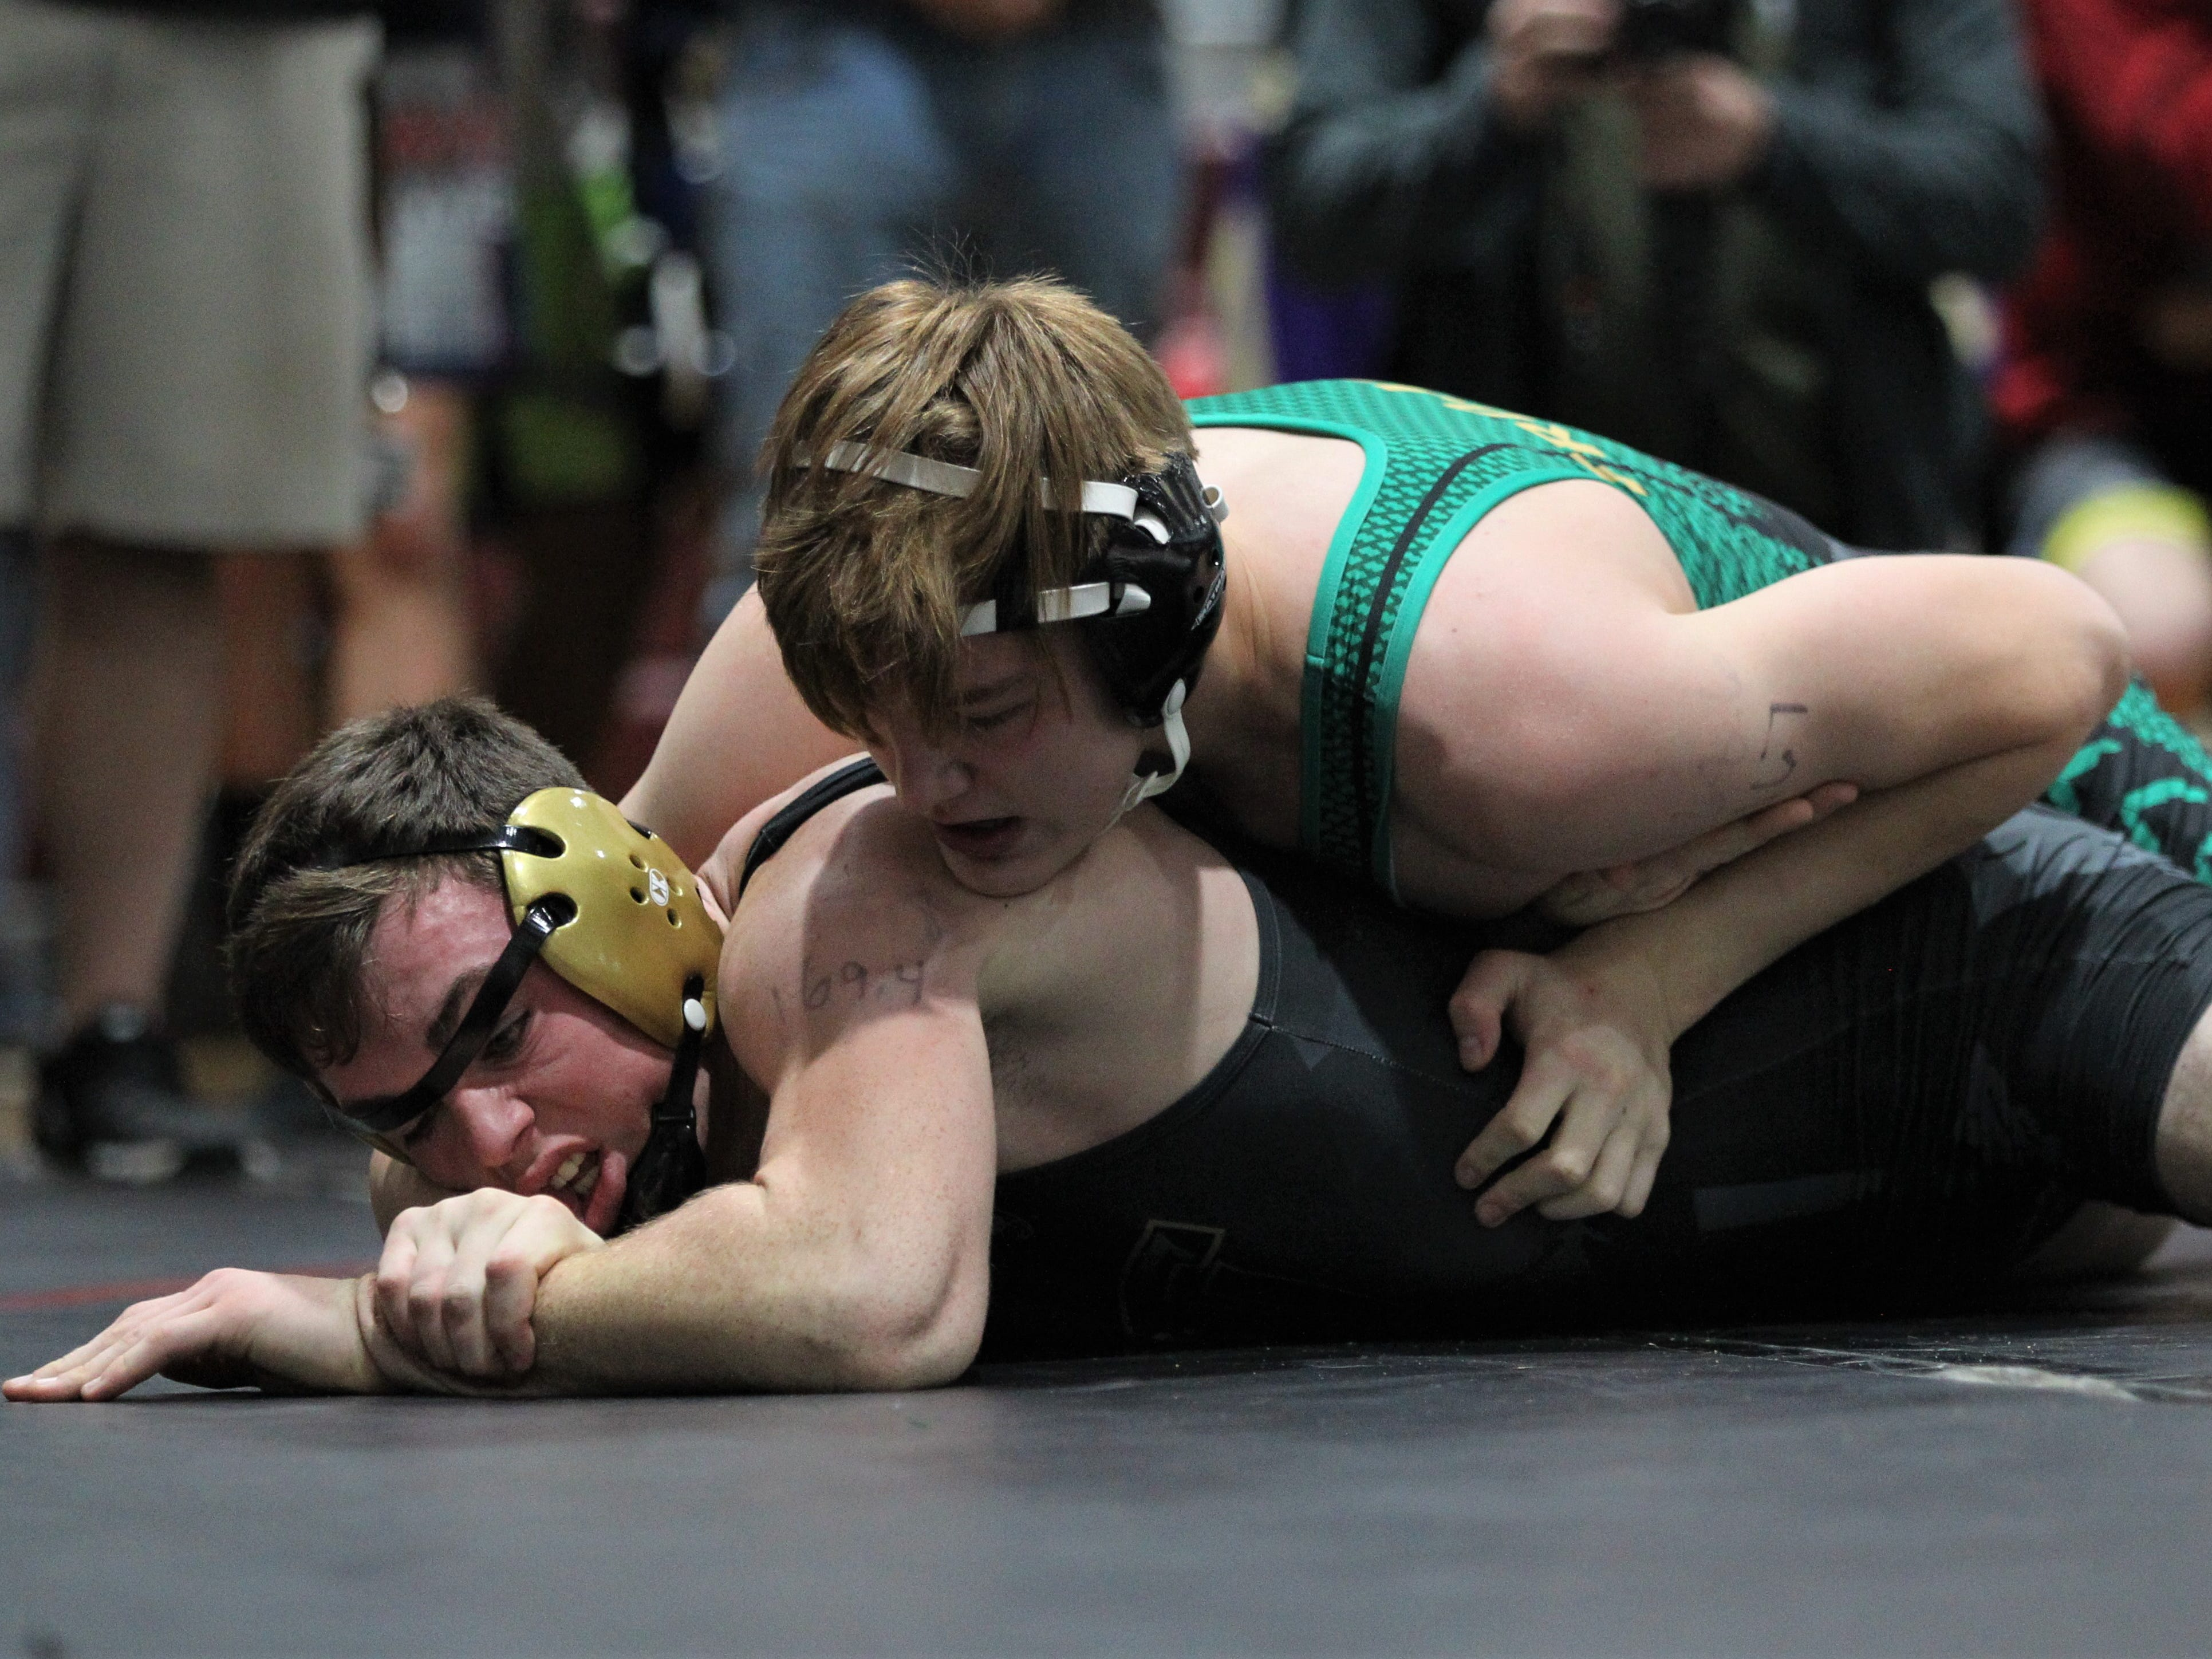 Florida High's Noah Perdue wrestles Lincoln's Cayden Bevis at the Cam Brown Seminole Classic wrestling tournament at Florida High on Dec. 7-8, 2018.